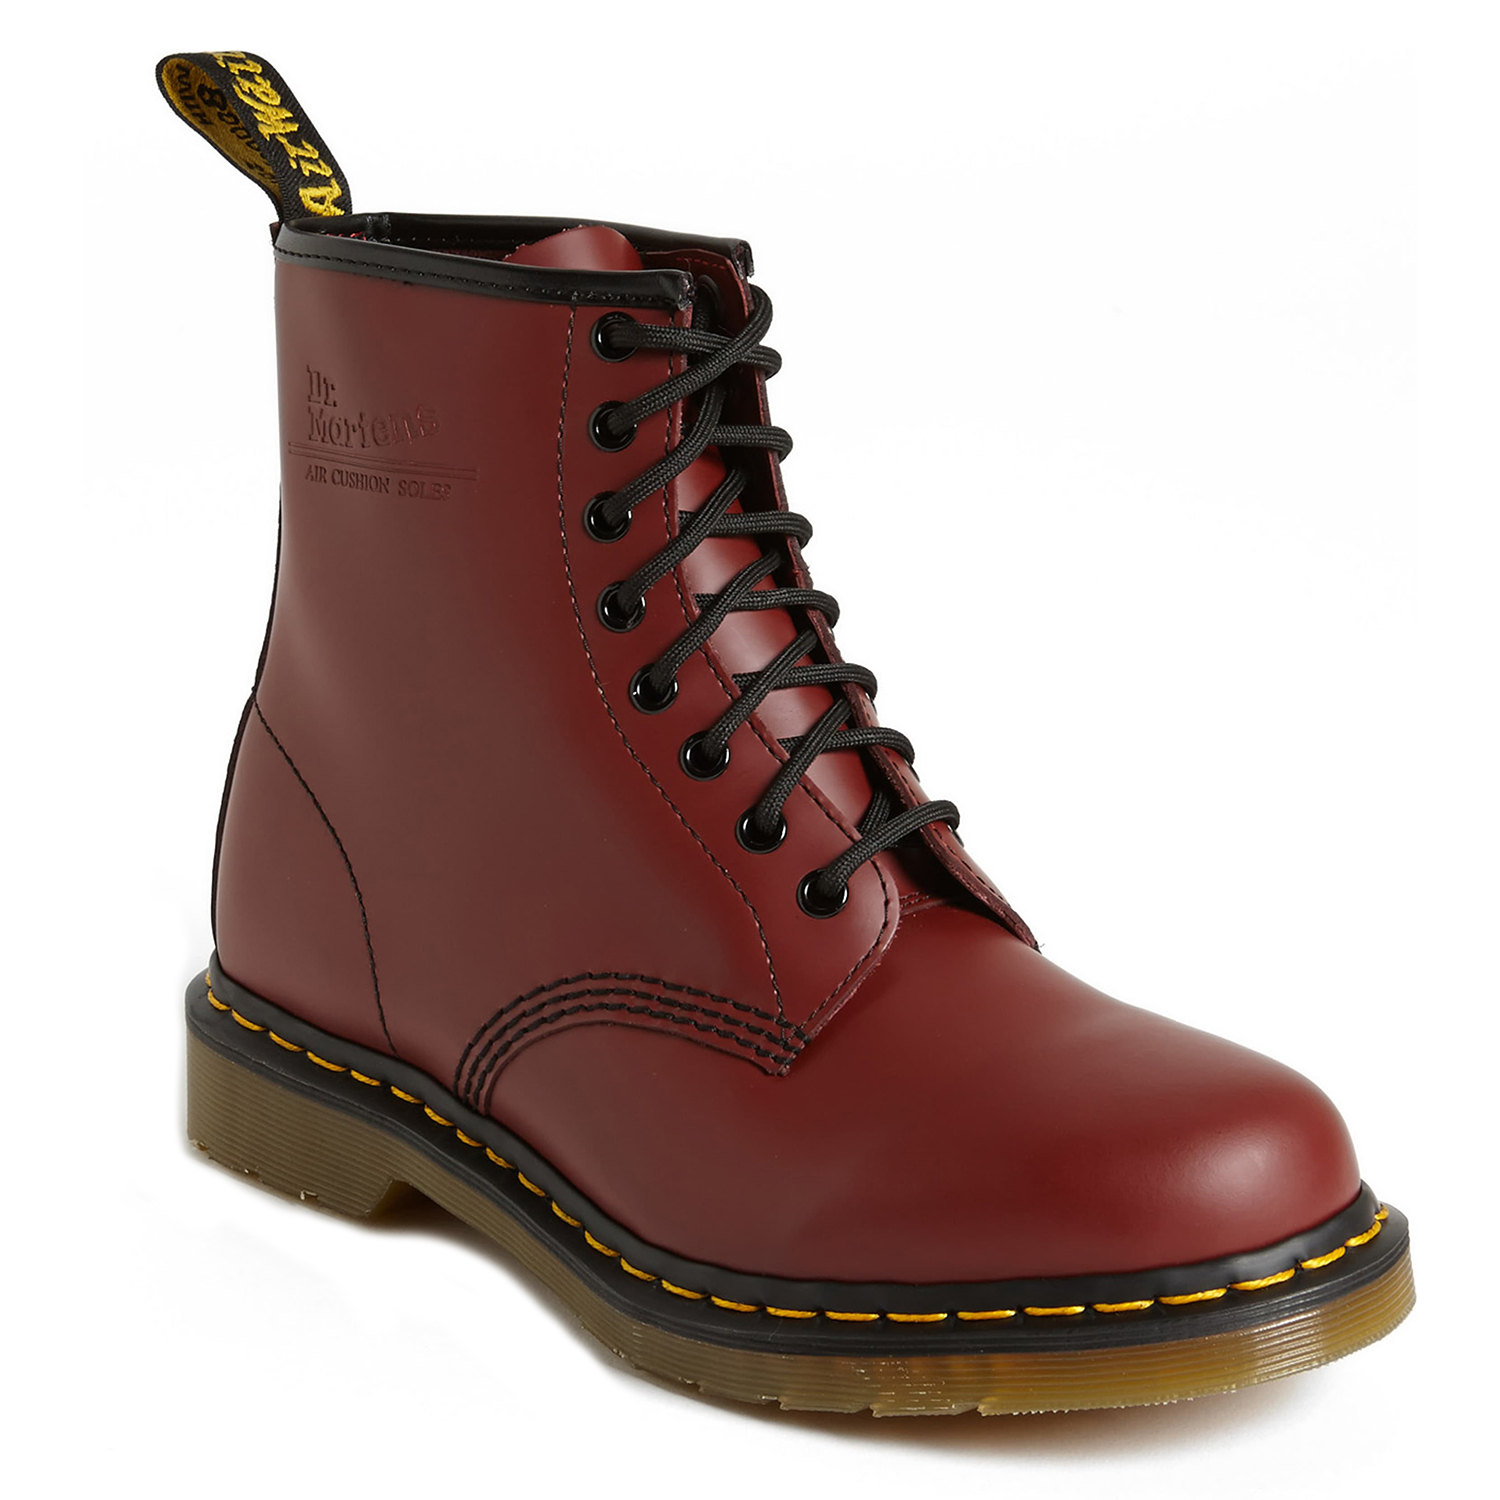 Dr. Martens '1460' Boot Cherry Red Smooth